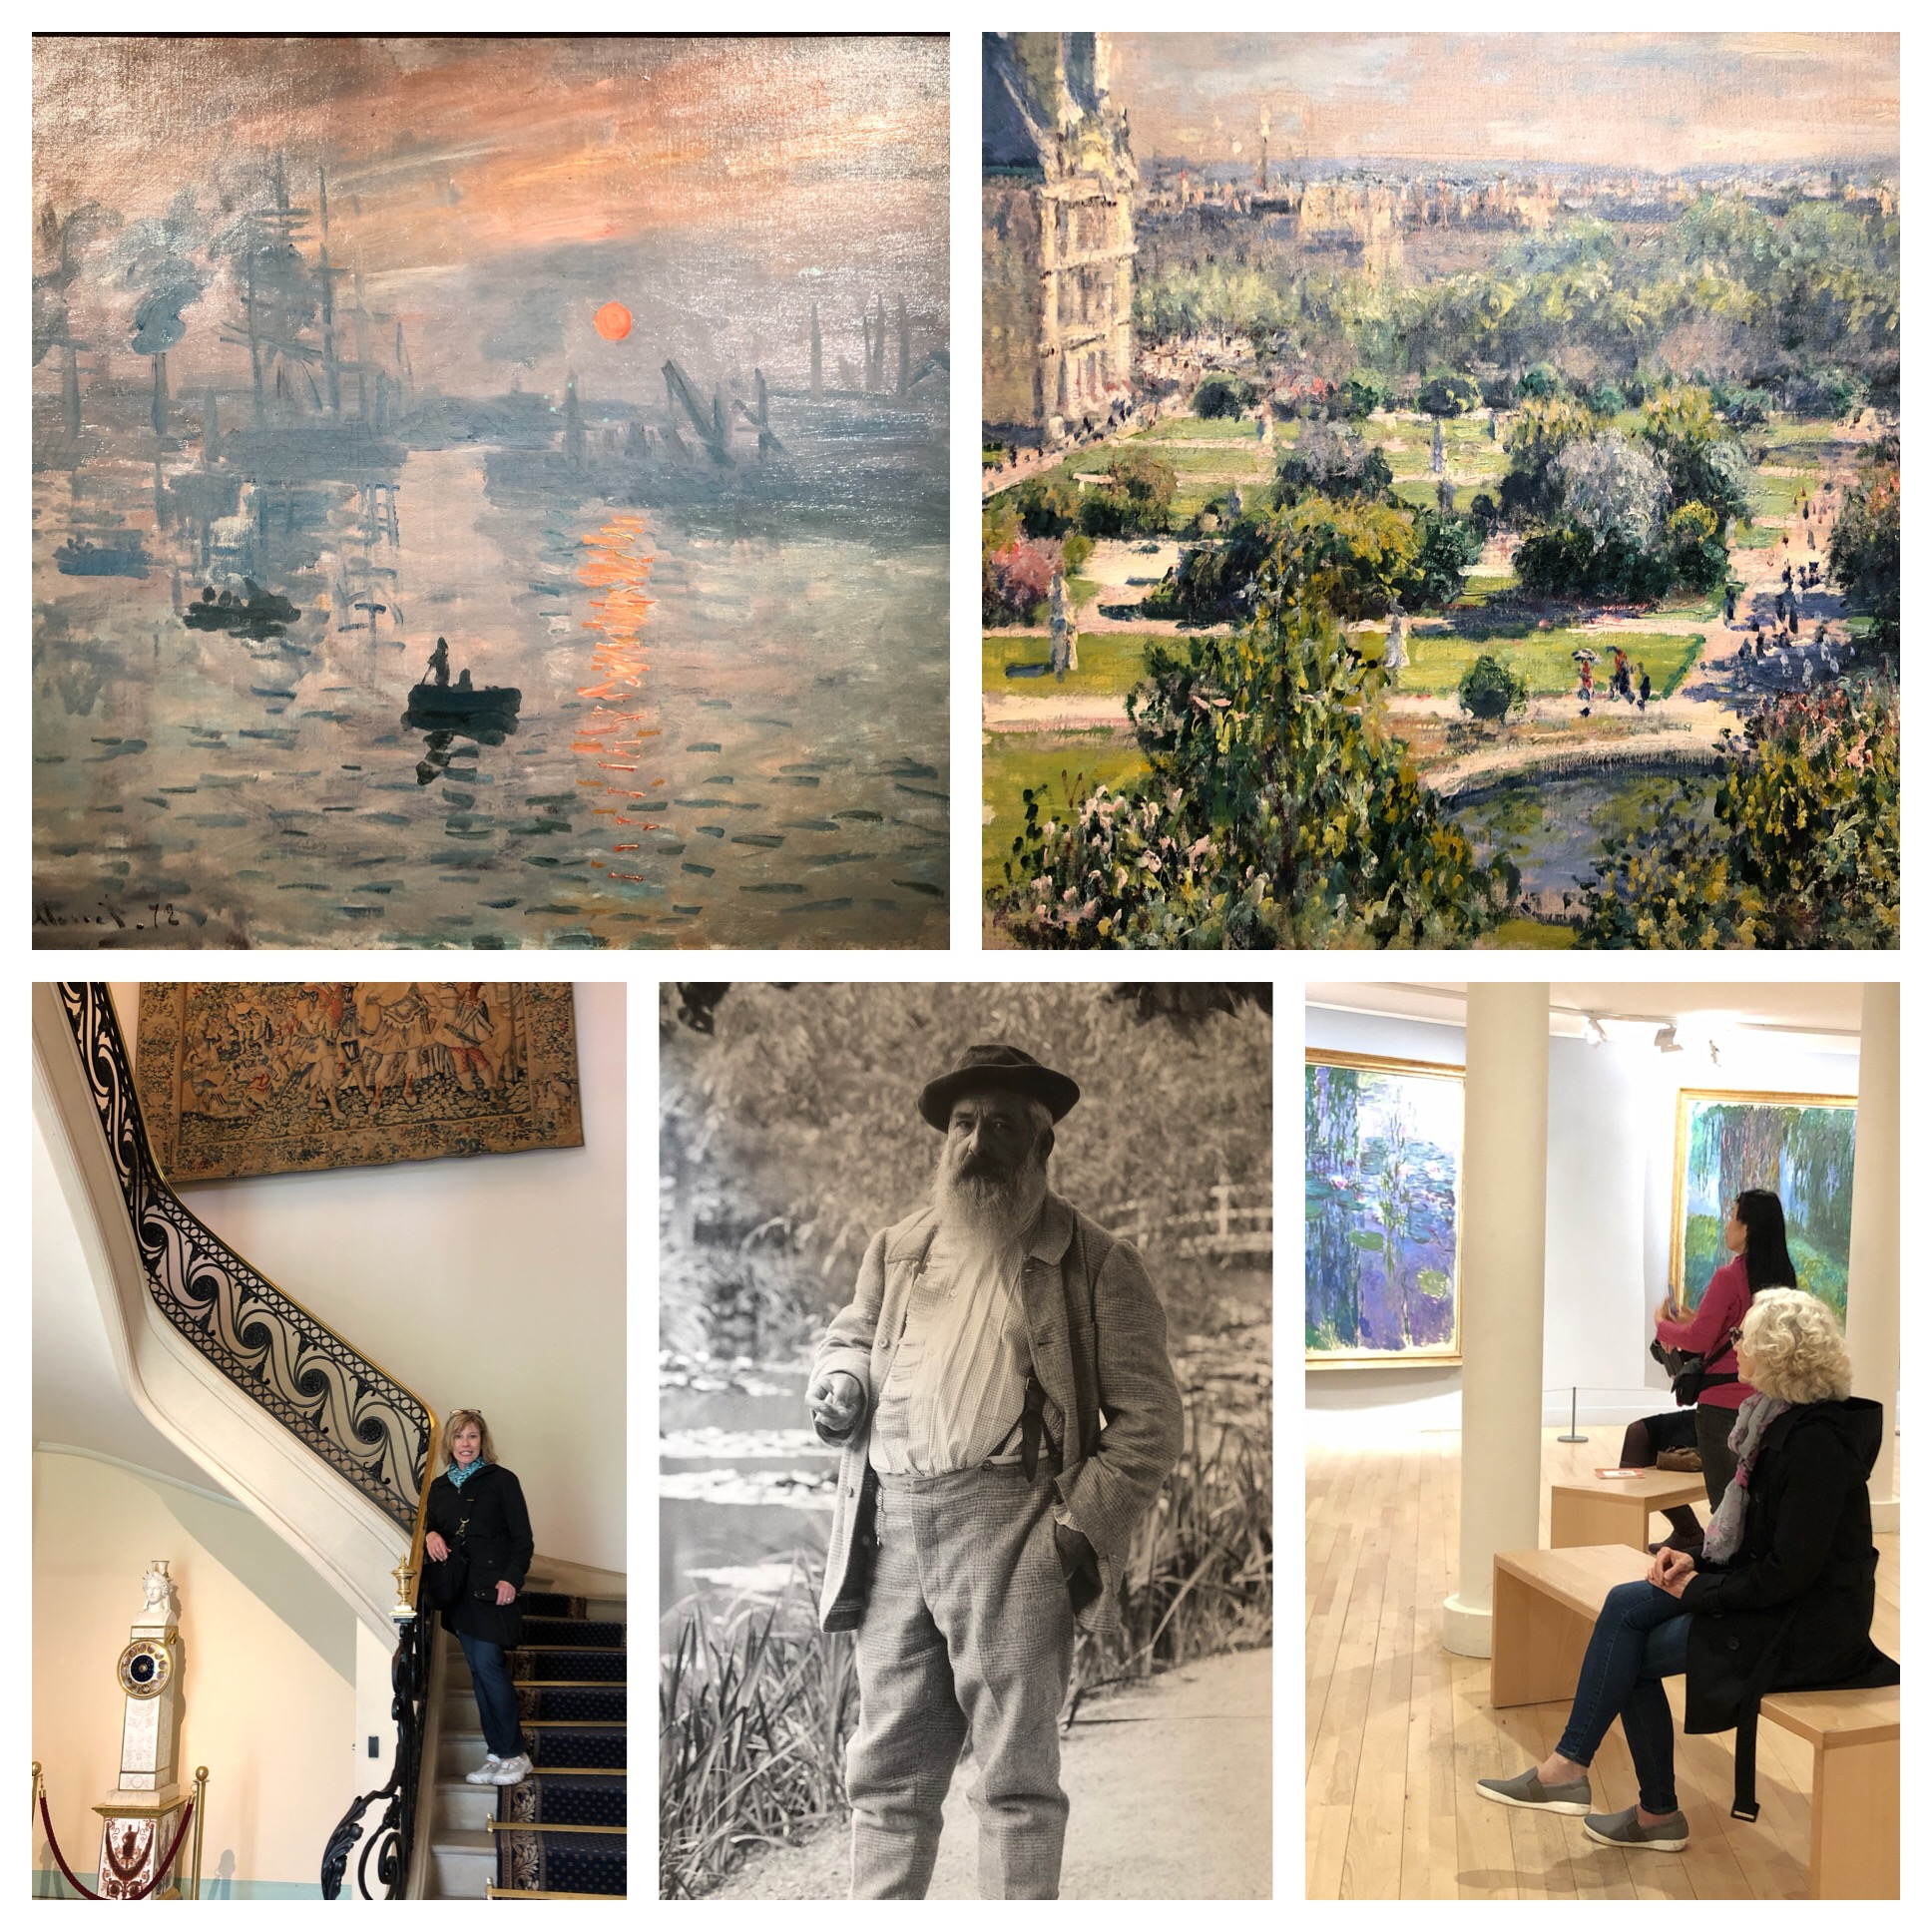 Top left is the painting that started the Impressionist movement -  Sunrise.